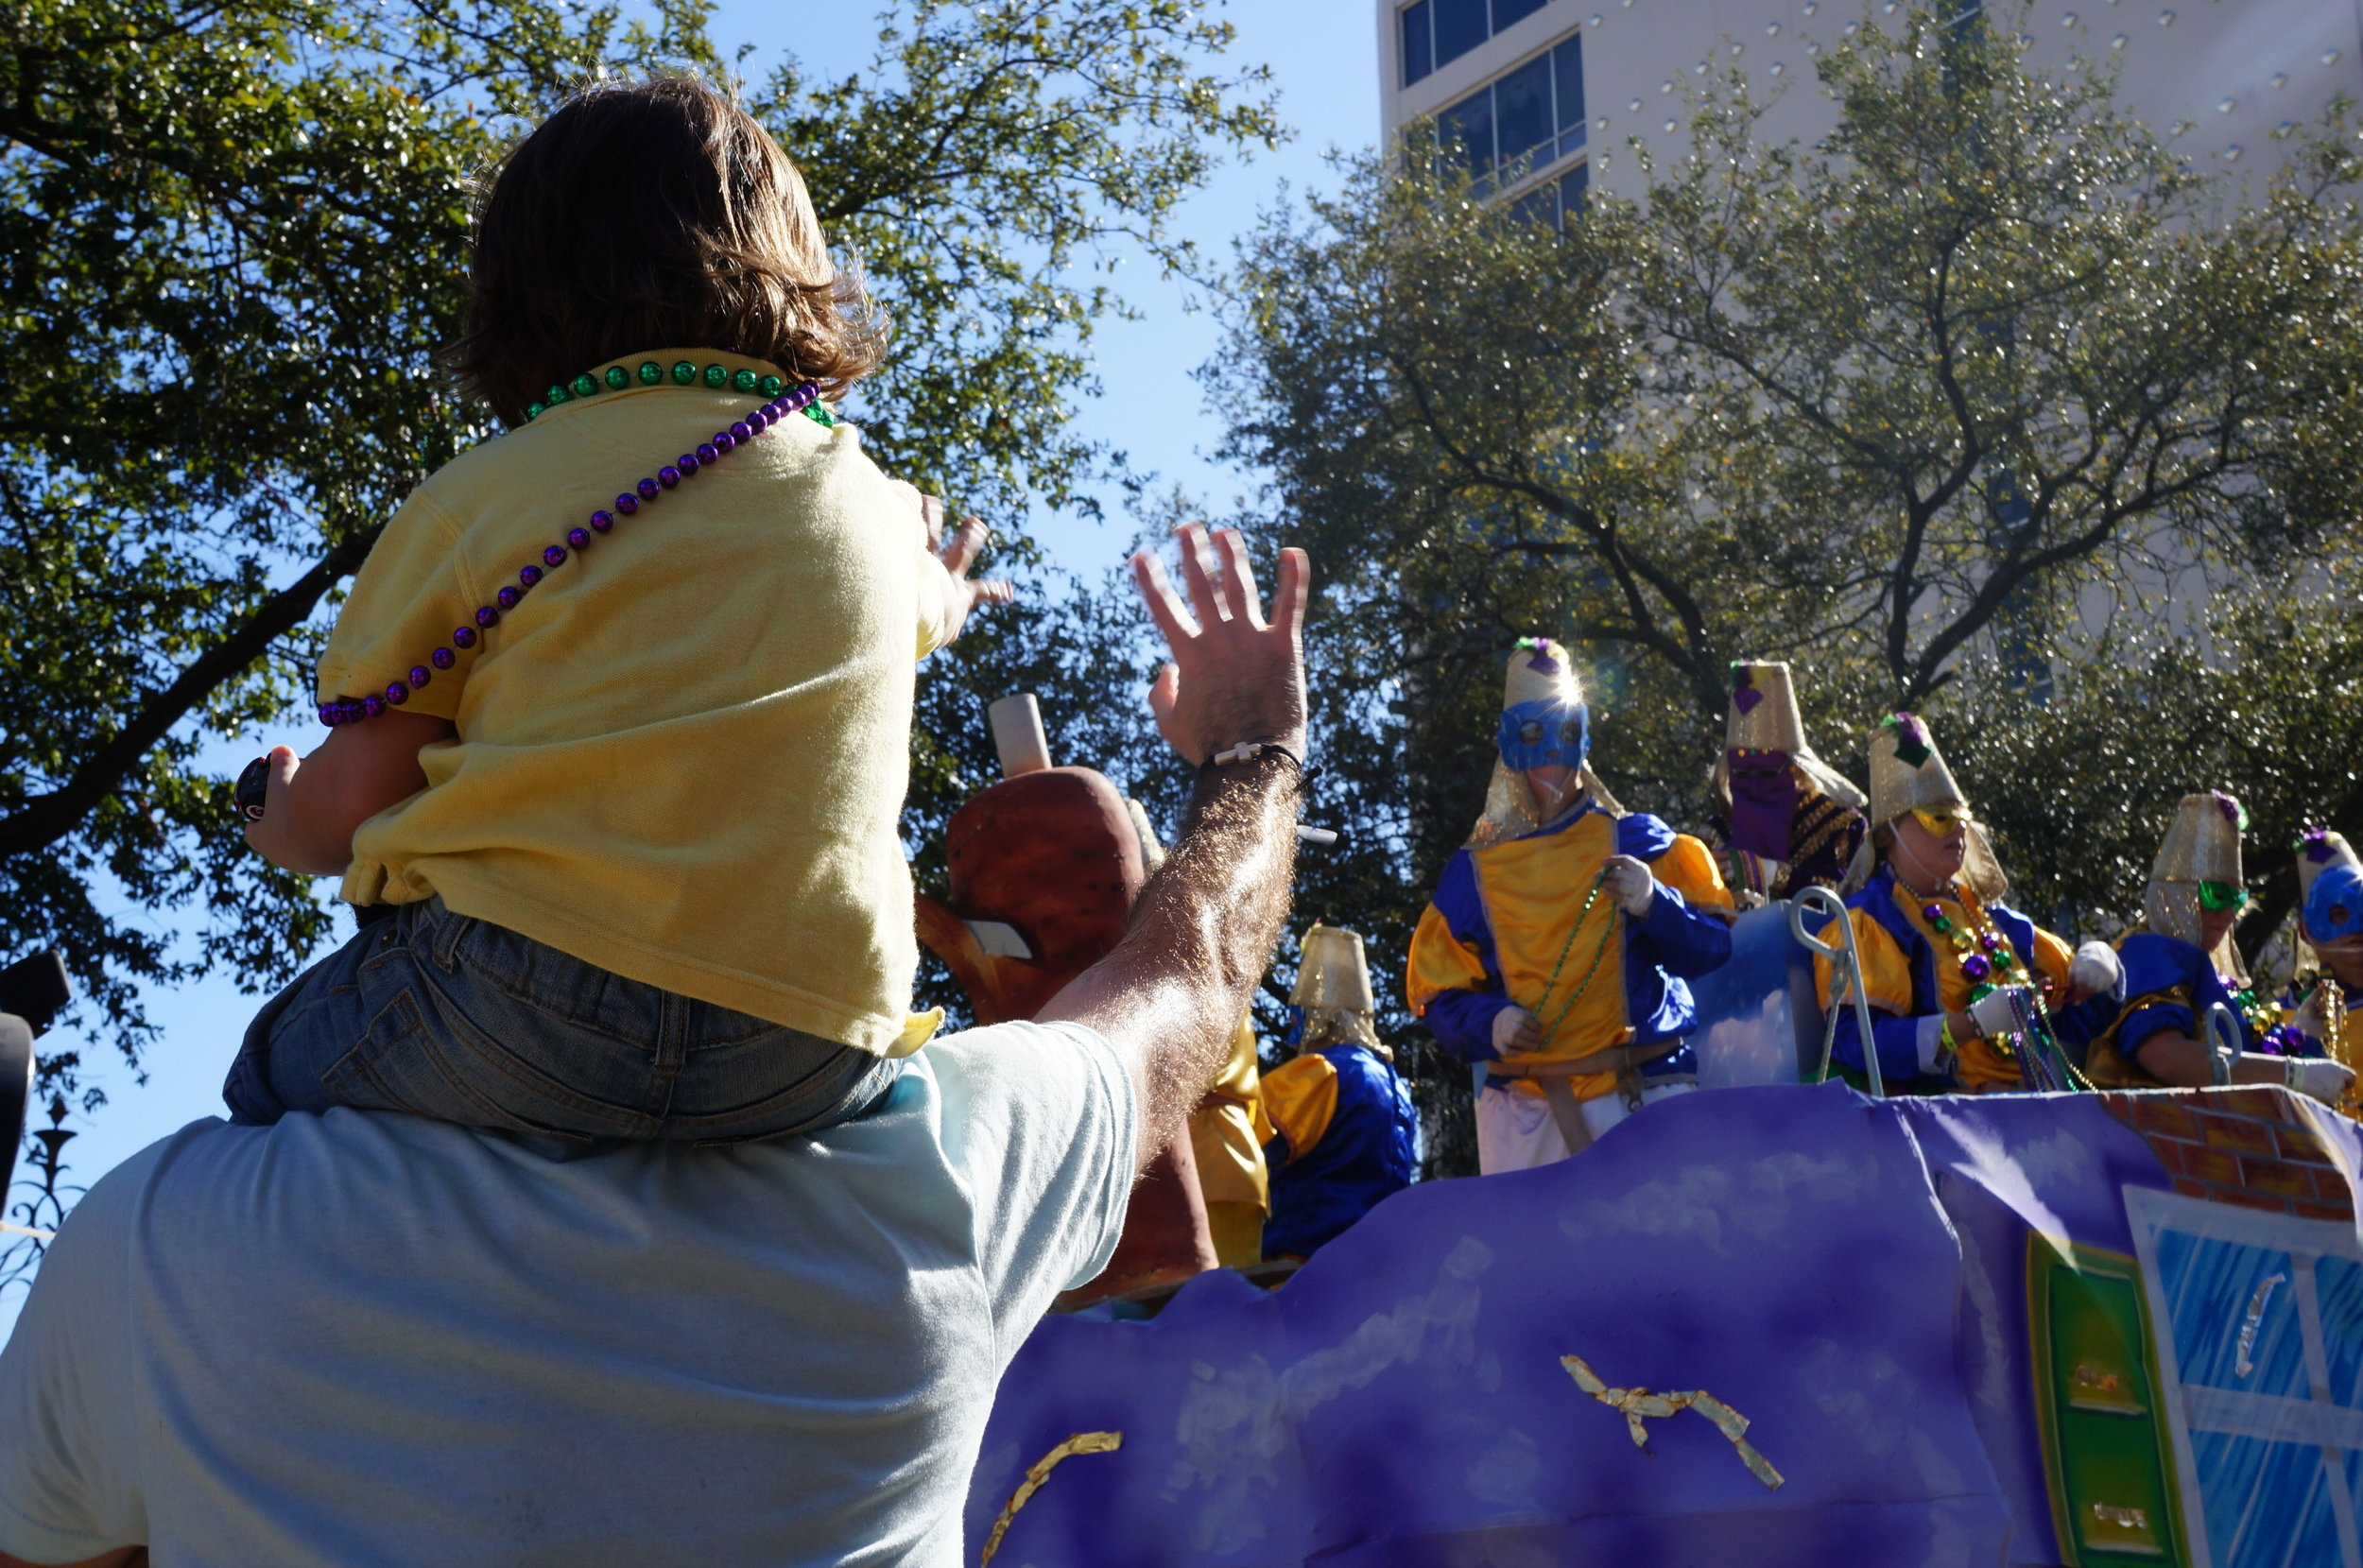 catching beads from parade float in new orleans